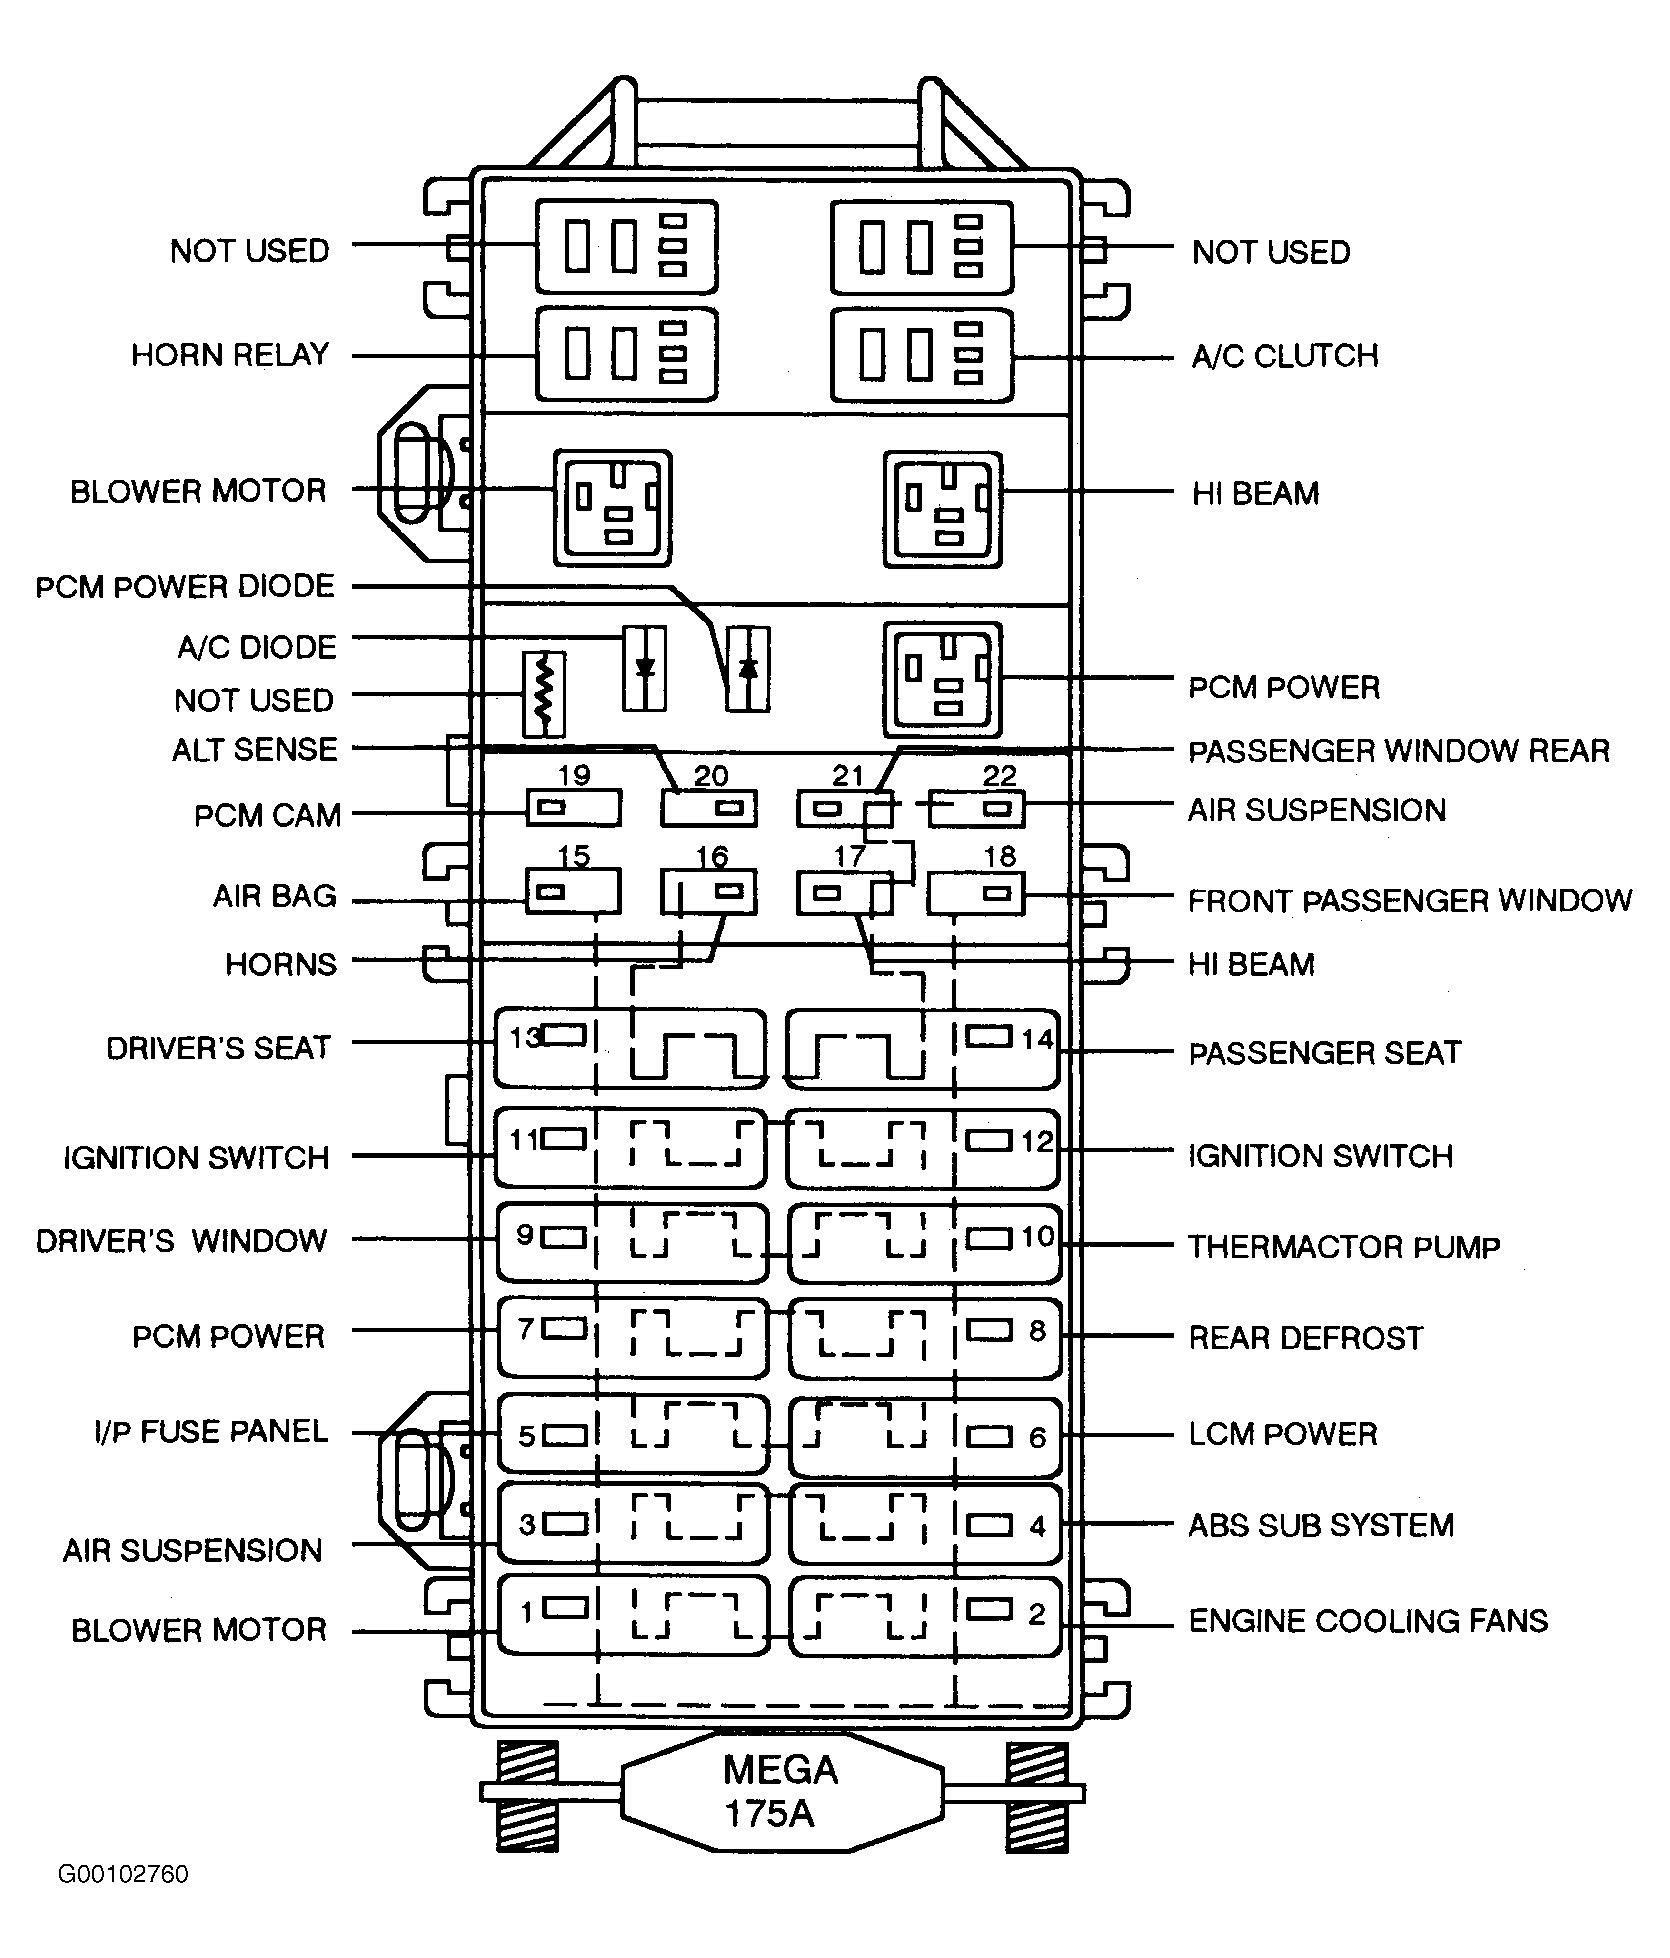 2000 mercury grand marquis fuse panel diagram